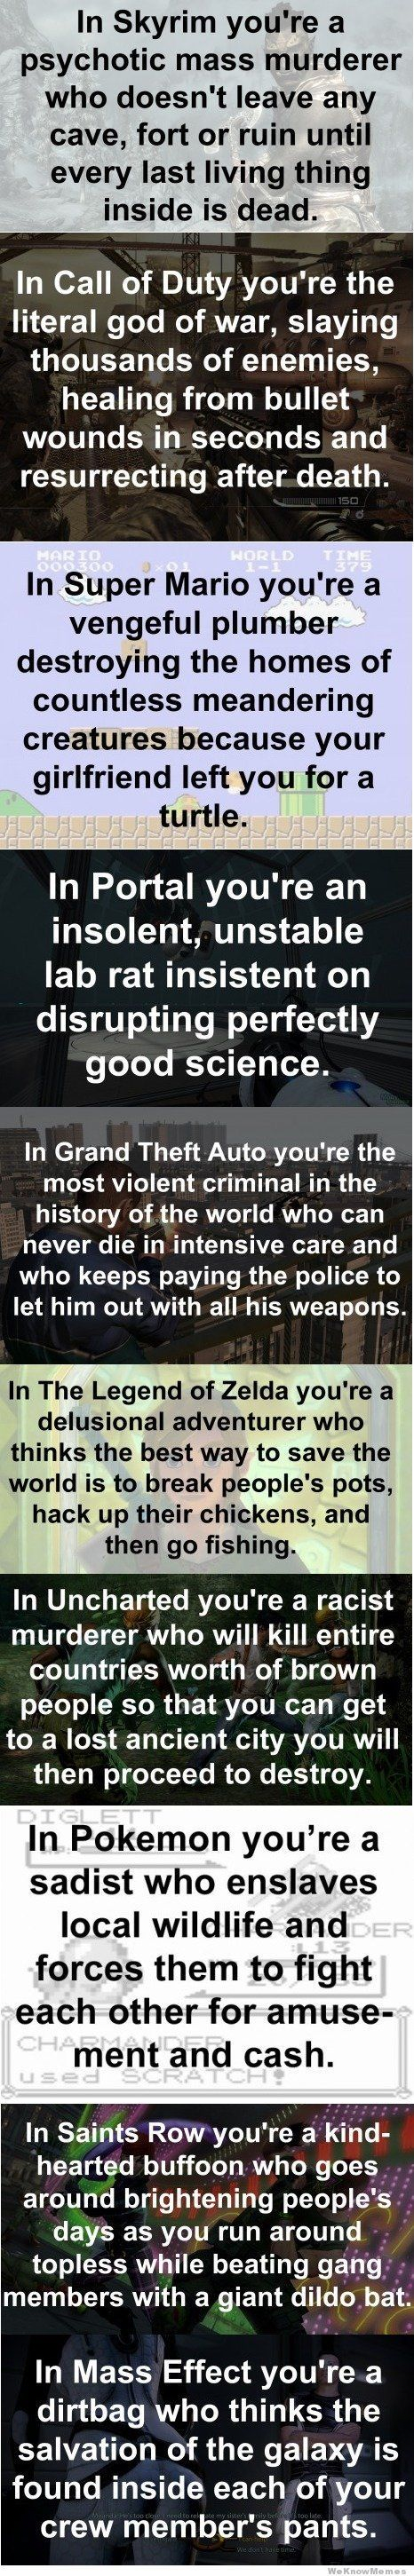 Skyrim, Saints Row, Grand Theft Auto, and Mass Effect I all played..too funny kinda true though